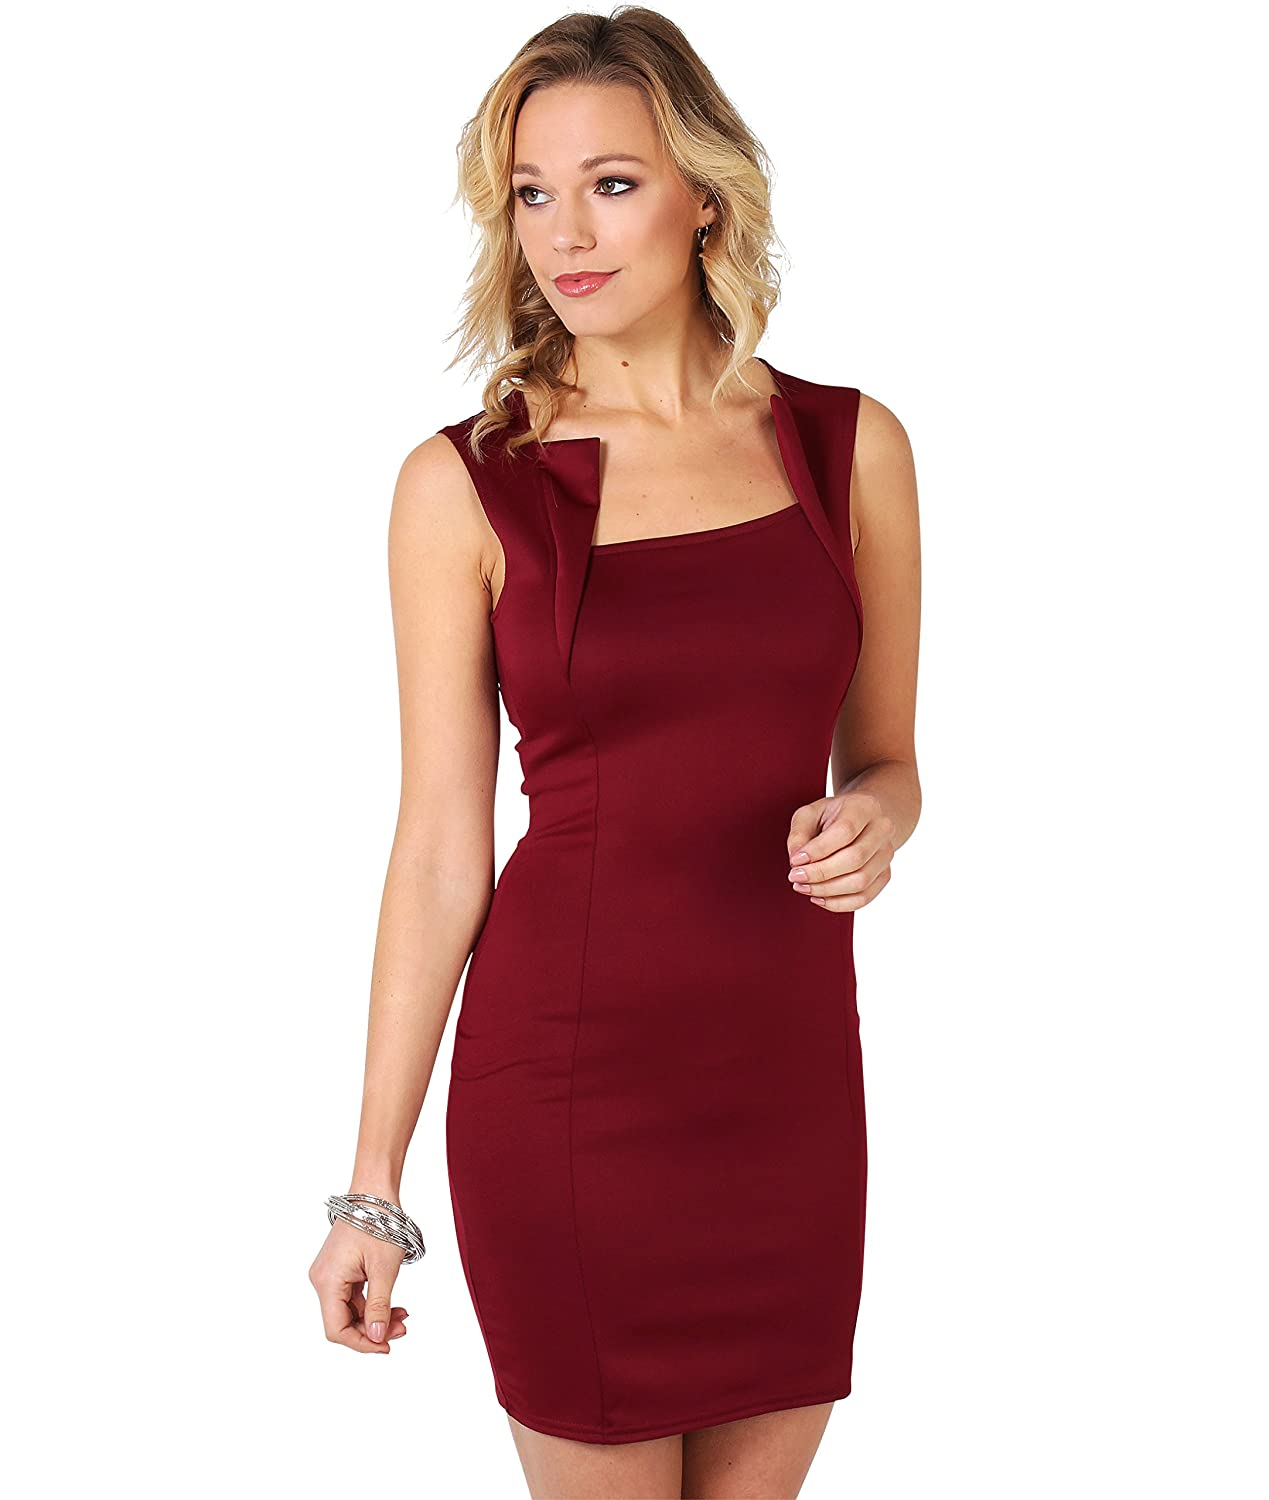 KRISP SALE Damen Figurbetontes Stretch Kleid Etuikleid Minikleid